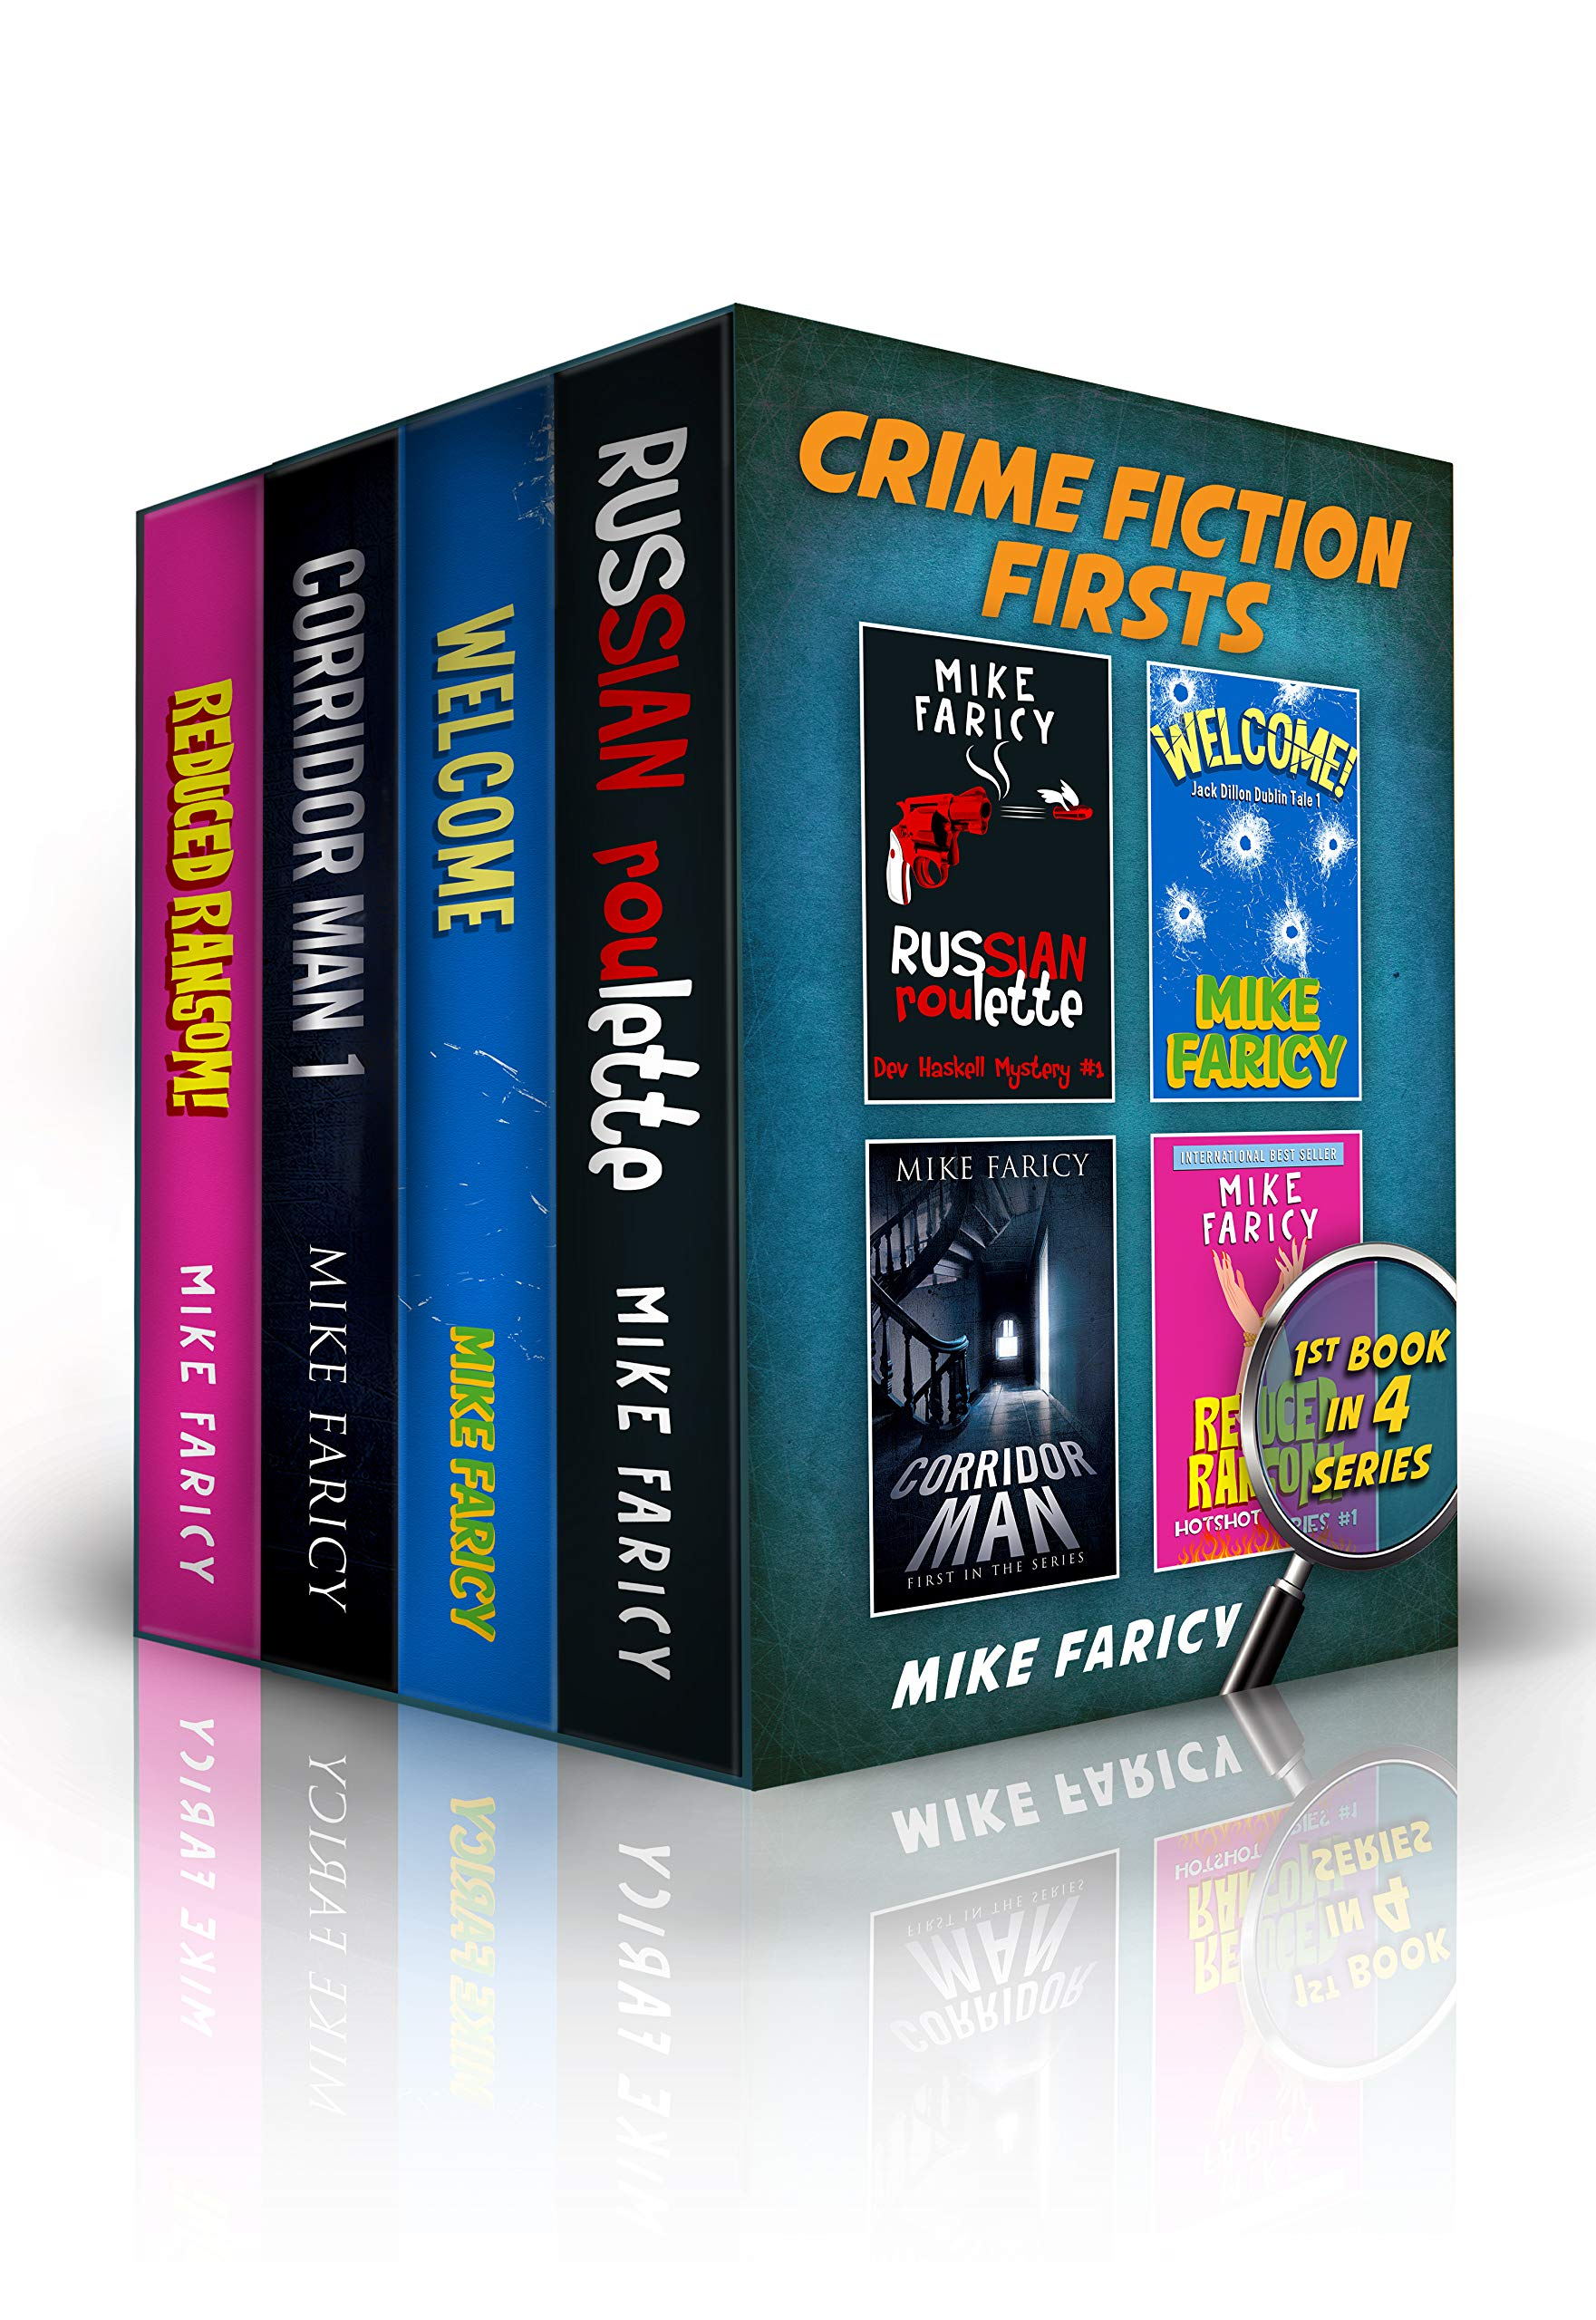 Crime Fiction Firsts: The First Book in FOUR Crime Fiction Series